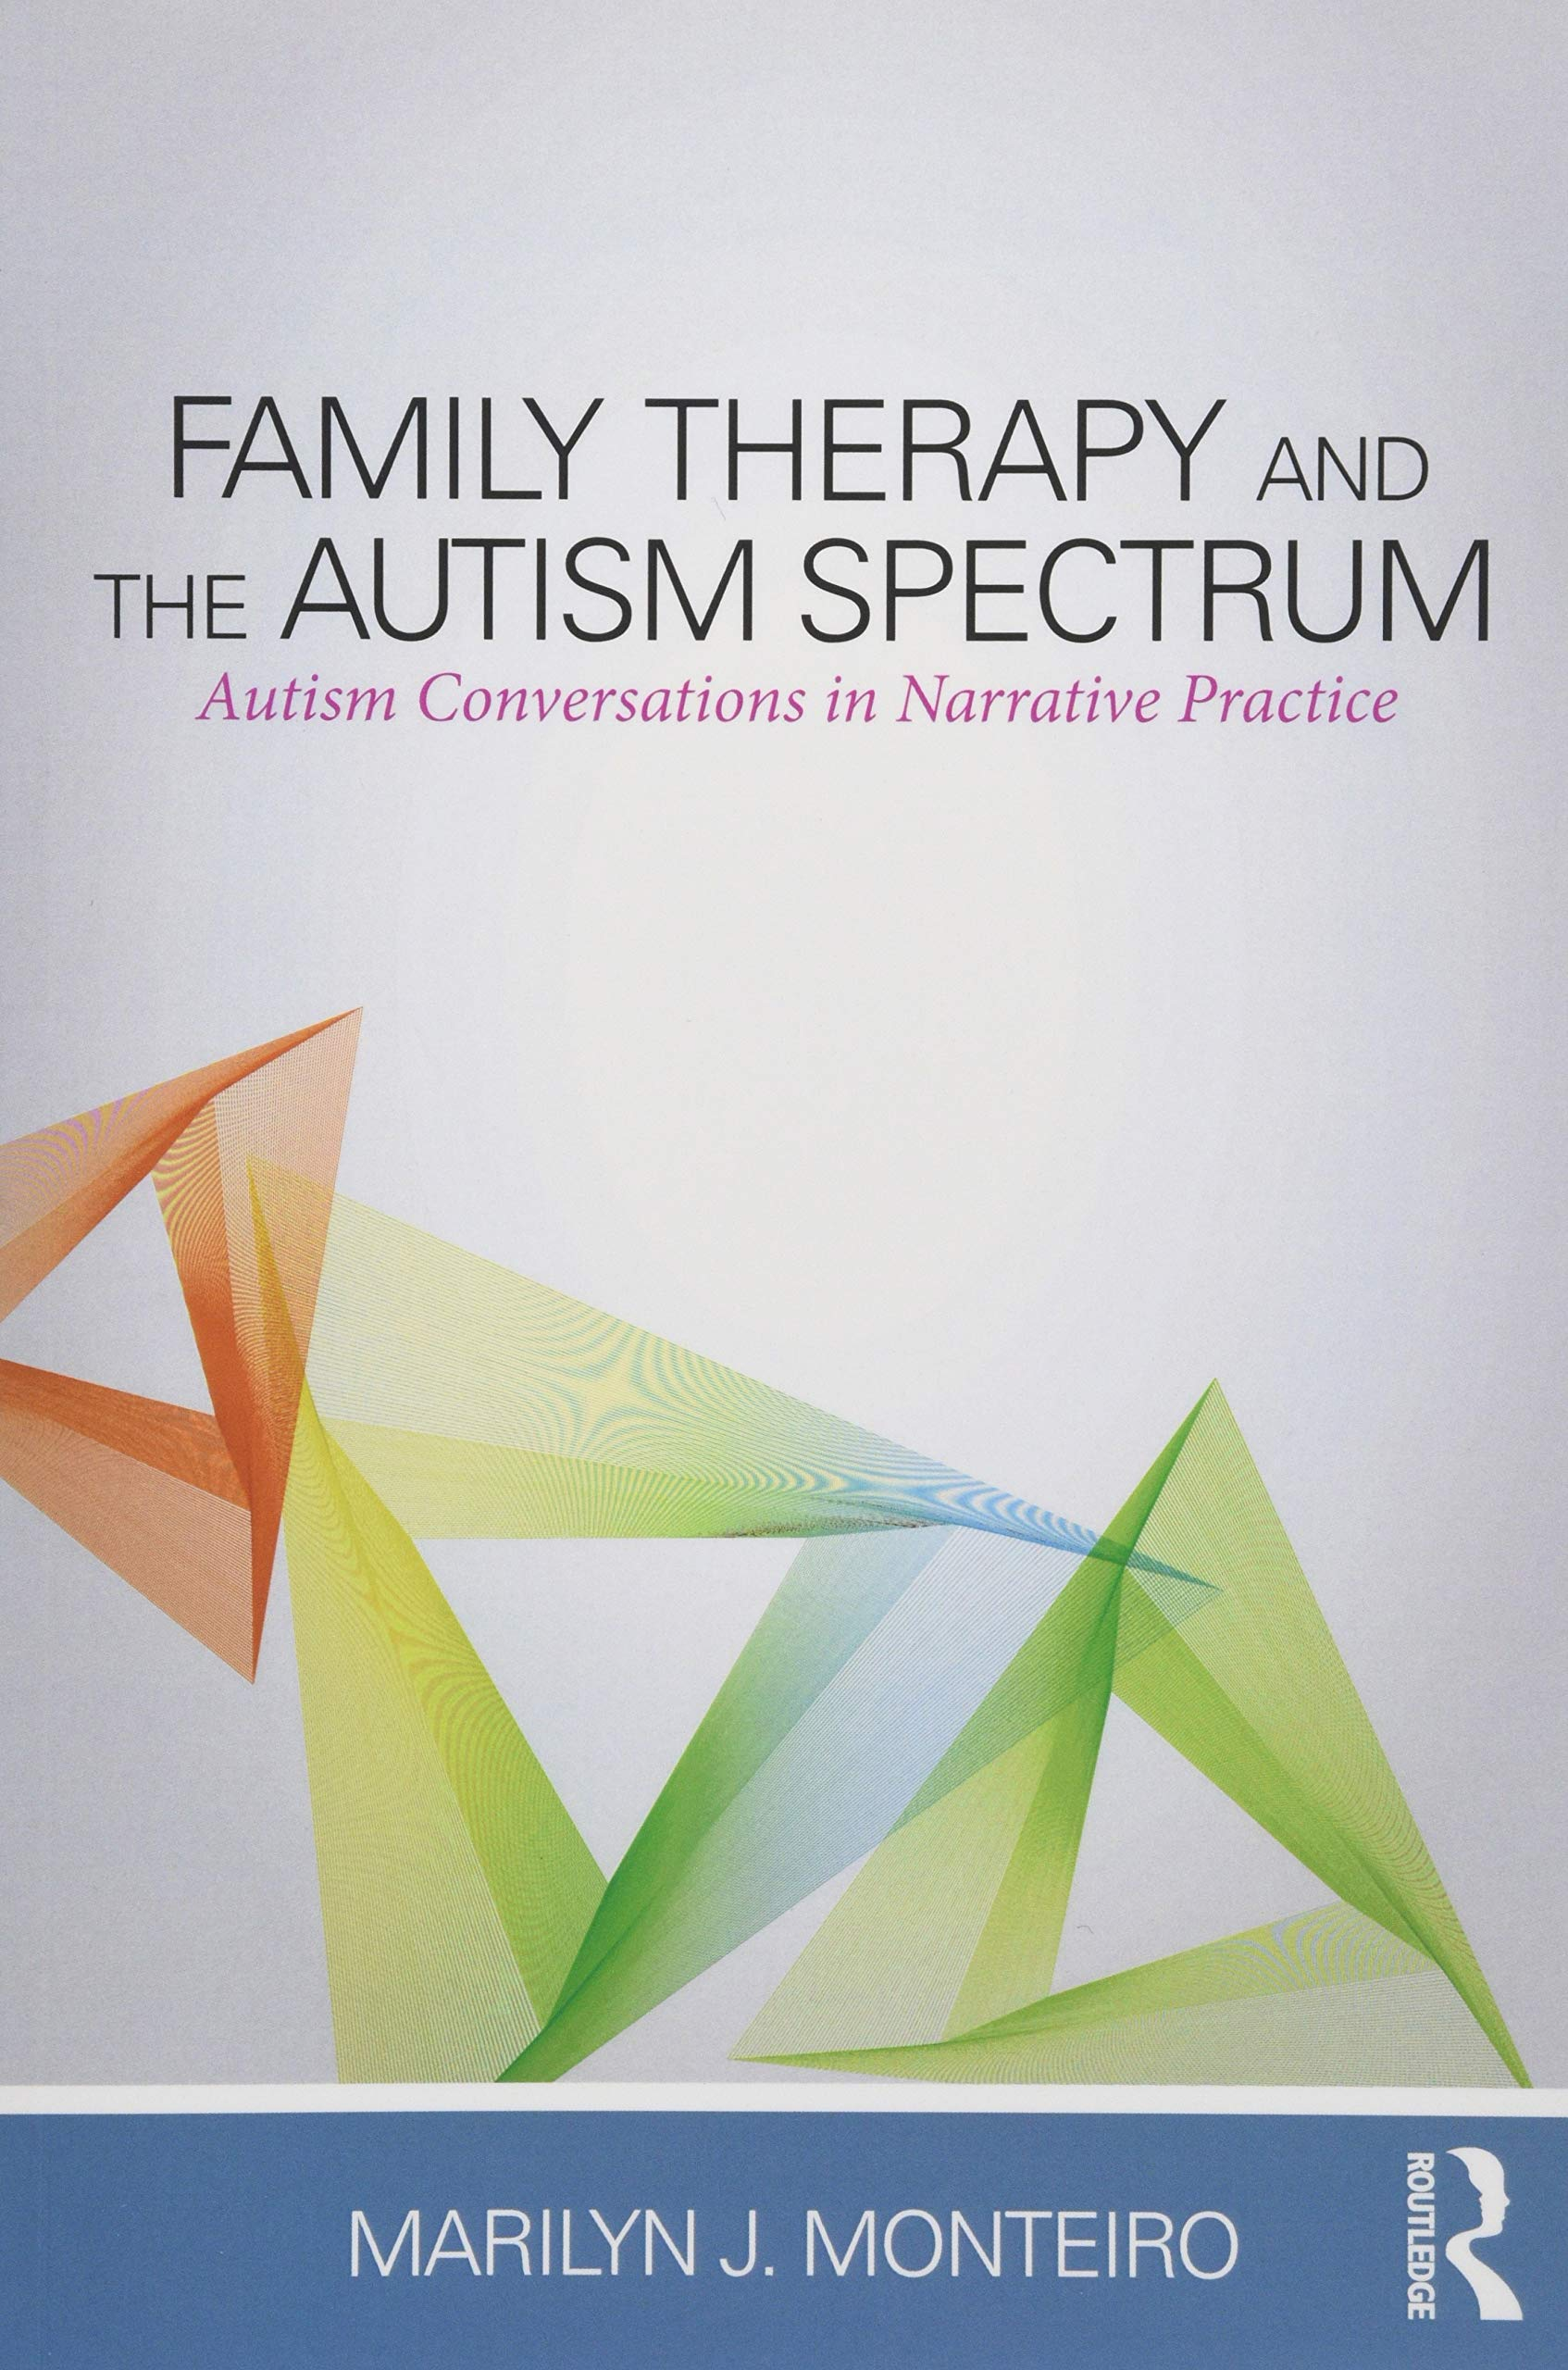 Image OfFamily Therapy And The Autism Spectrum: Autism Conversations In Narrative Practice